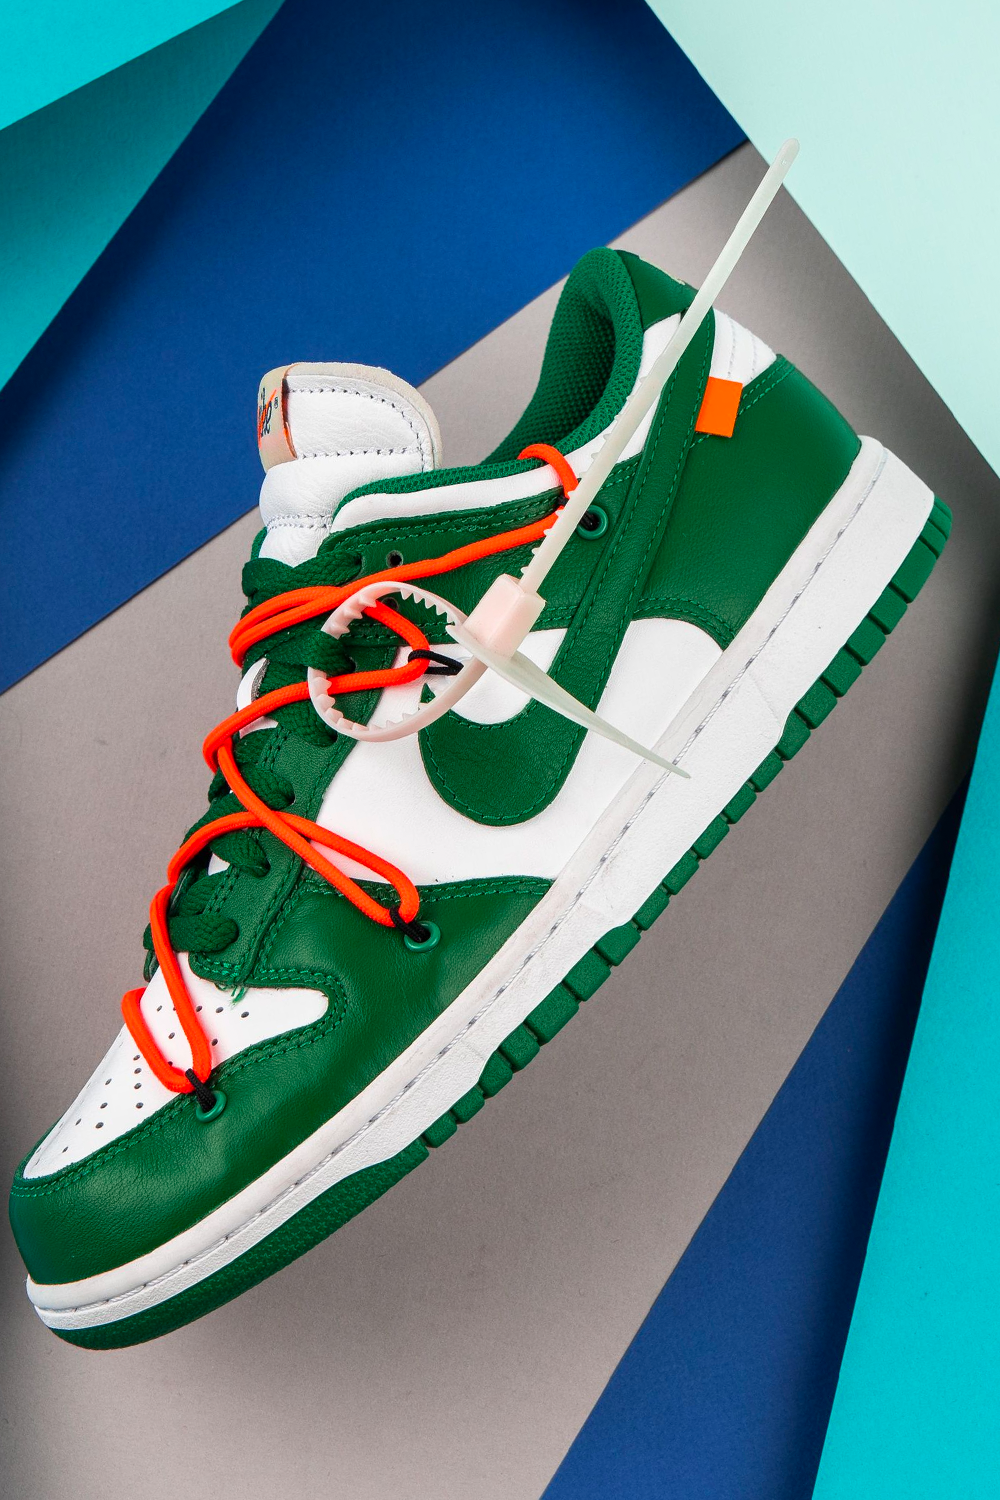 Nike Dunk Low Off White Pine Green Ct0856 100 2021 In 2021 Off White Shoes Nike Dunks Hype Shoes